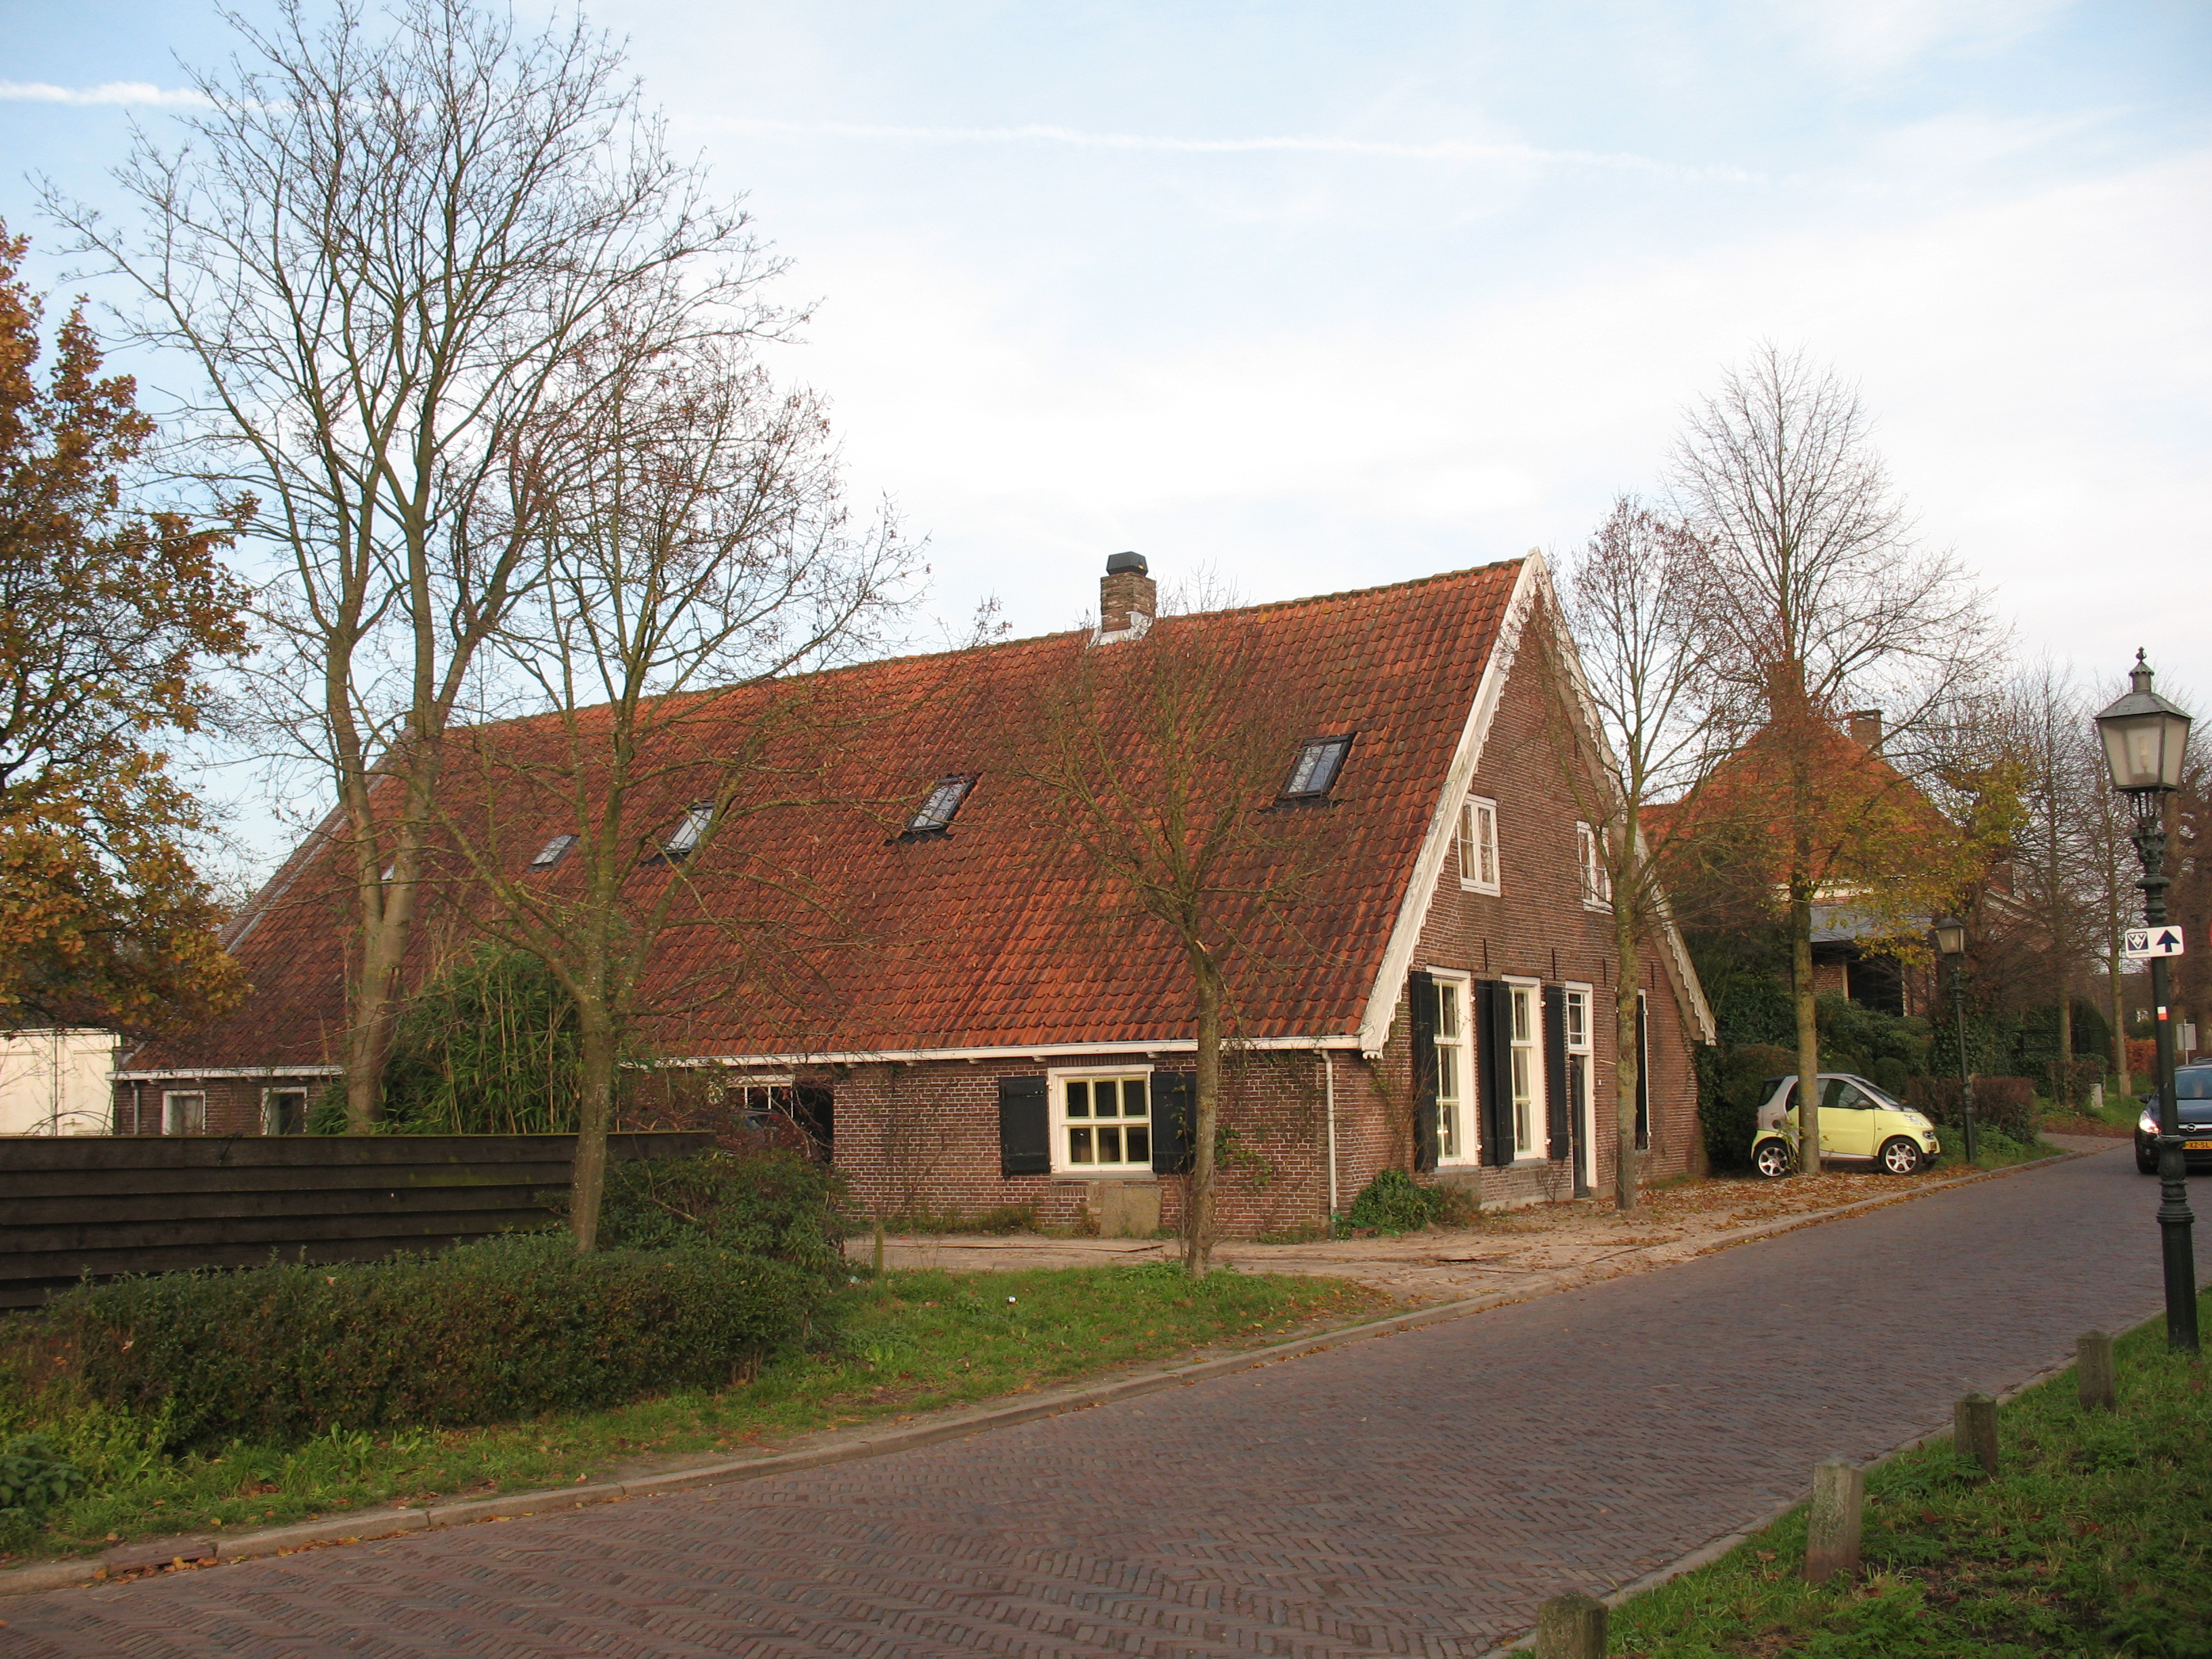 File:Amerongen - Drostestraat 31 - Foto 2.jpg - Wikimedia Commons